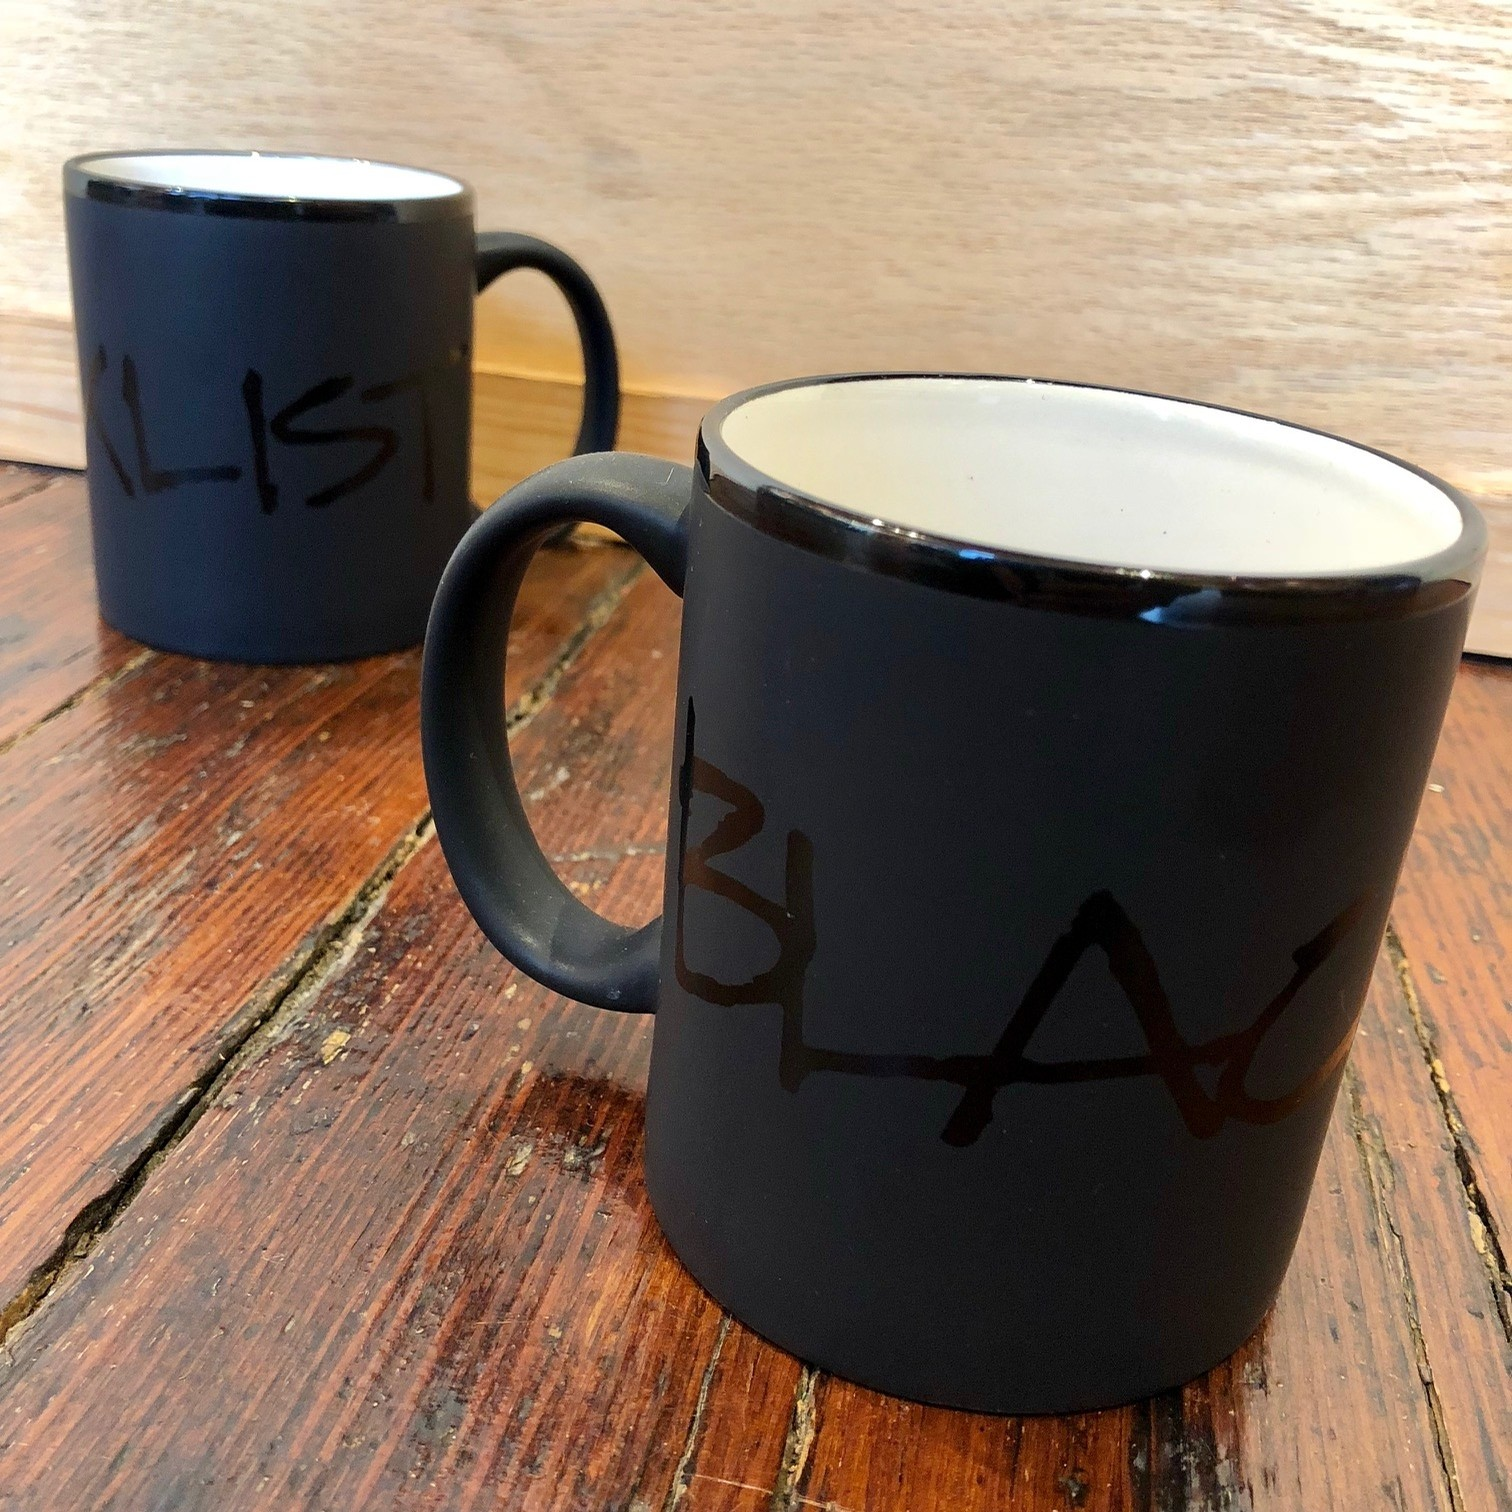 BLACKLISTRIGHTE LOGO COFFEE MUG (GLOSS ON MATTE)